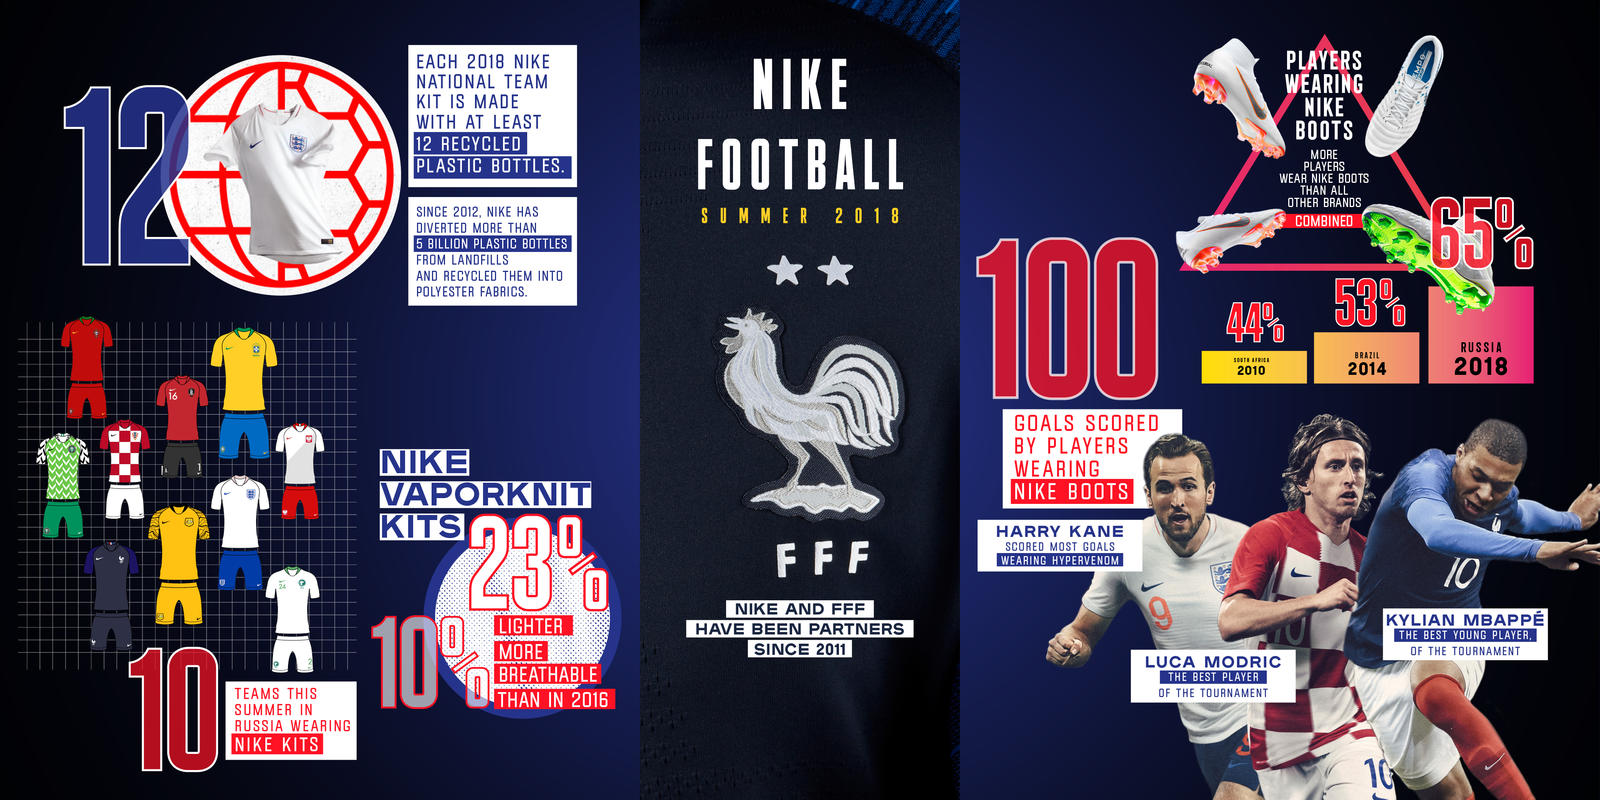 Les Bleus Secure a Second Star on their Nike Kits 4